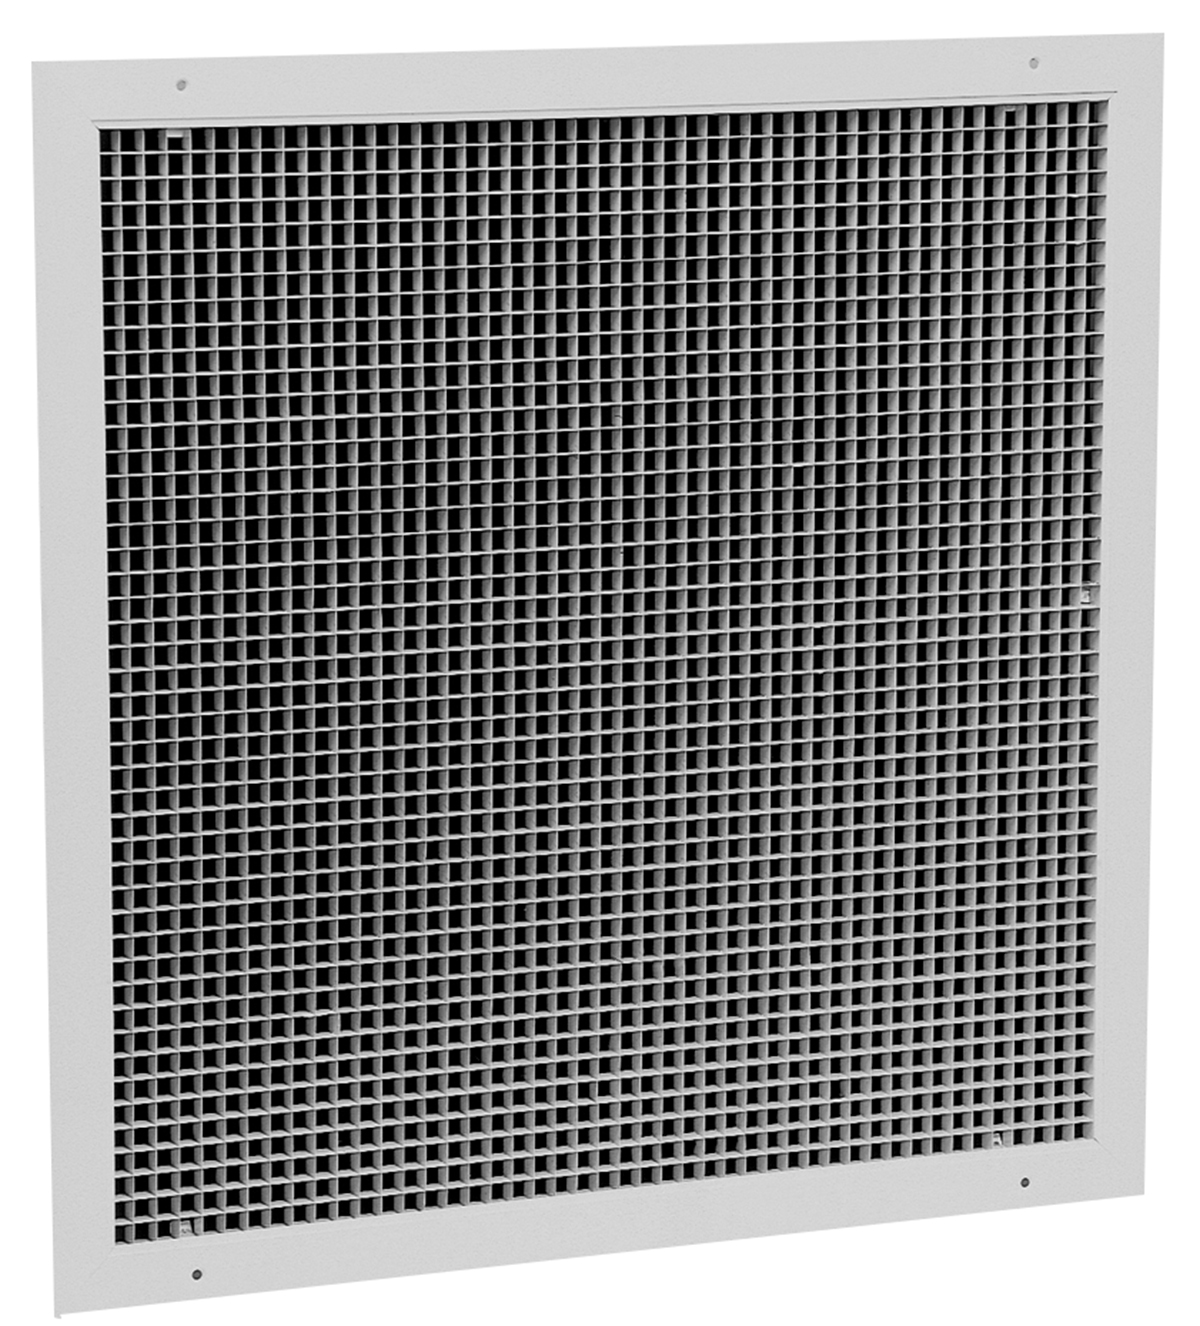 Grid Ceiling Return Air Grille : Re aluminum eggcrate return air grille hart cooley